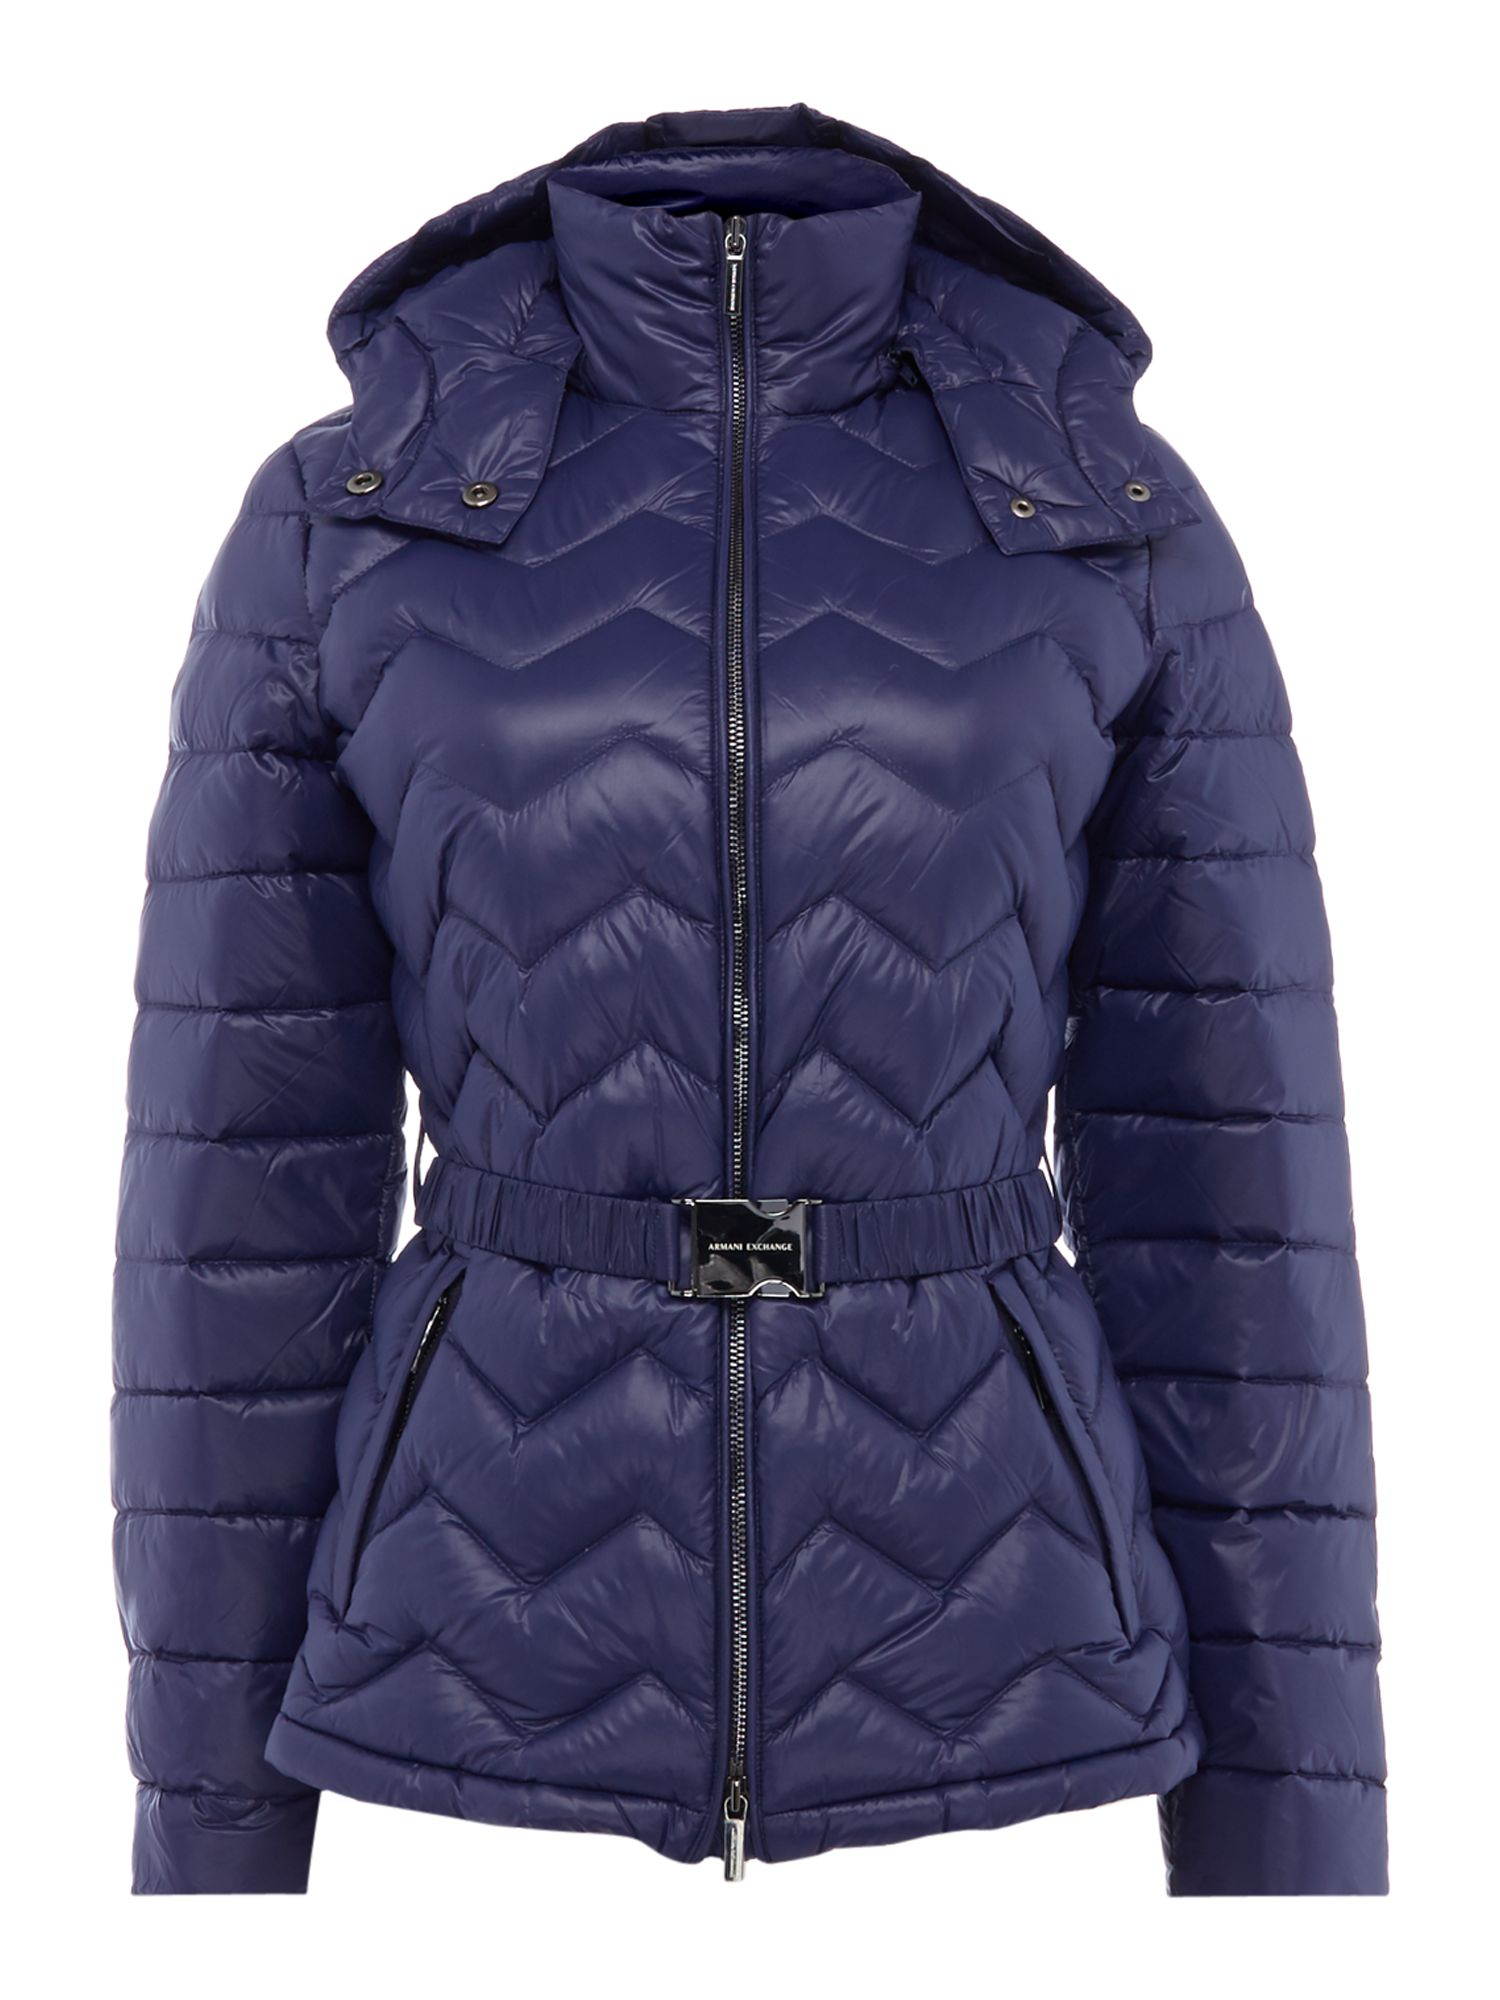 Armani Exchange Belted Padded Coat in evening Blue, Blue